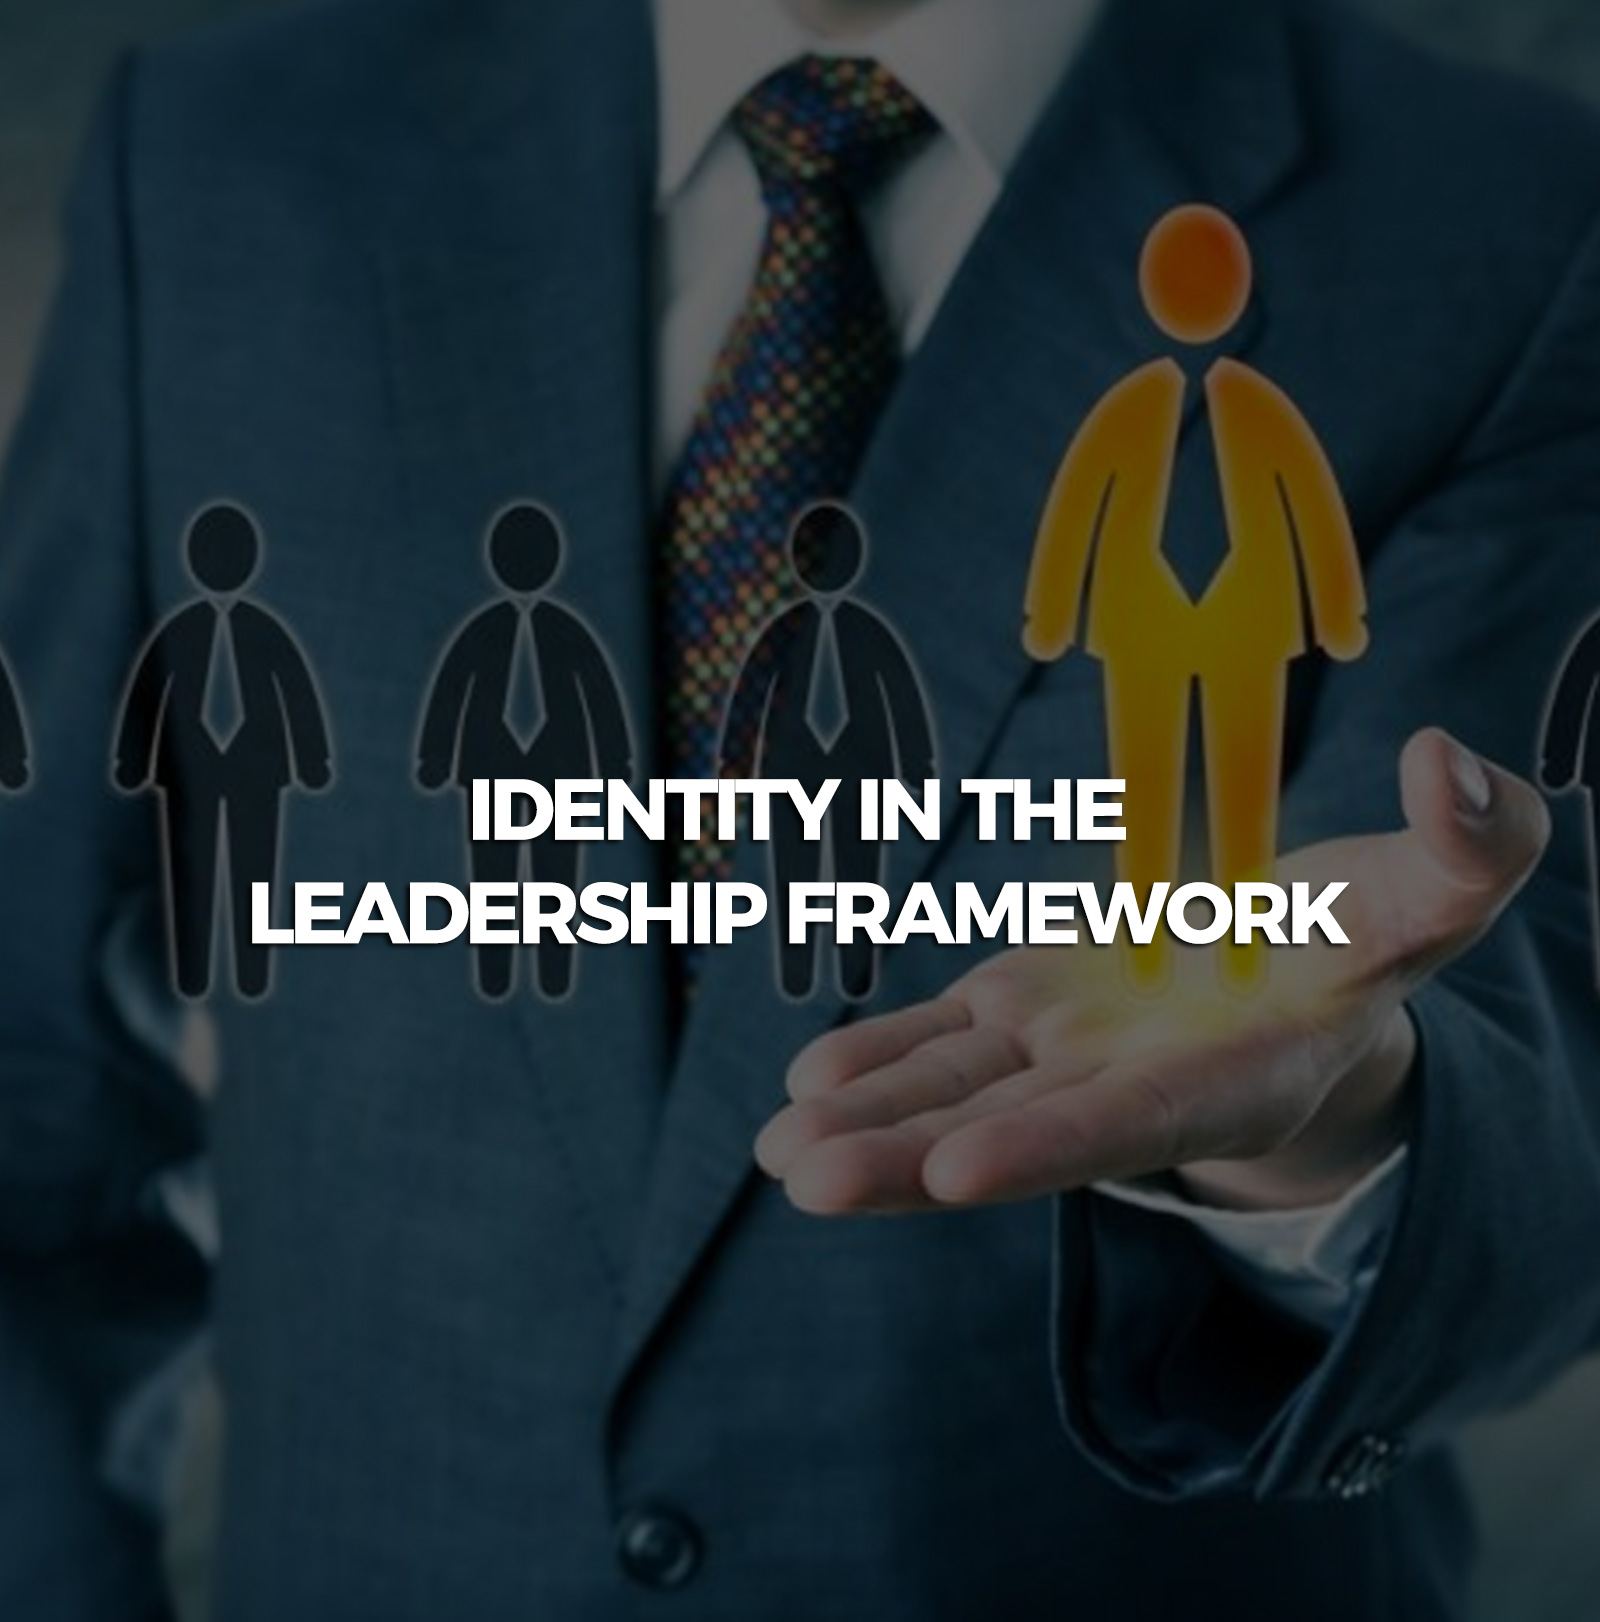 identity-in-the-leadership-framework